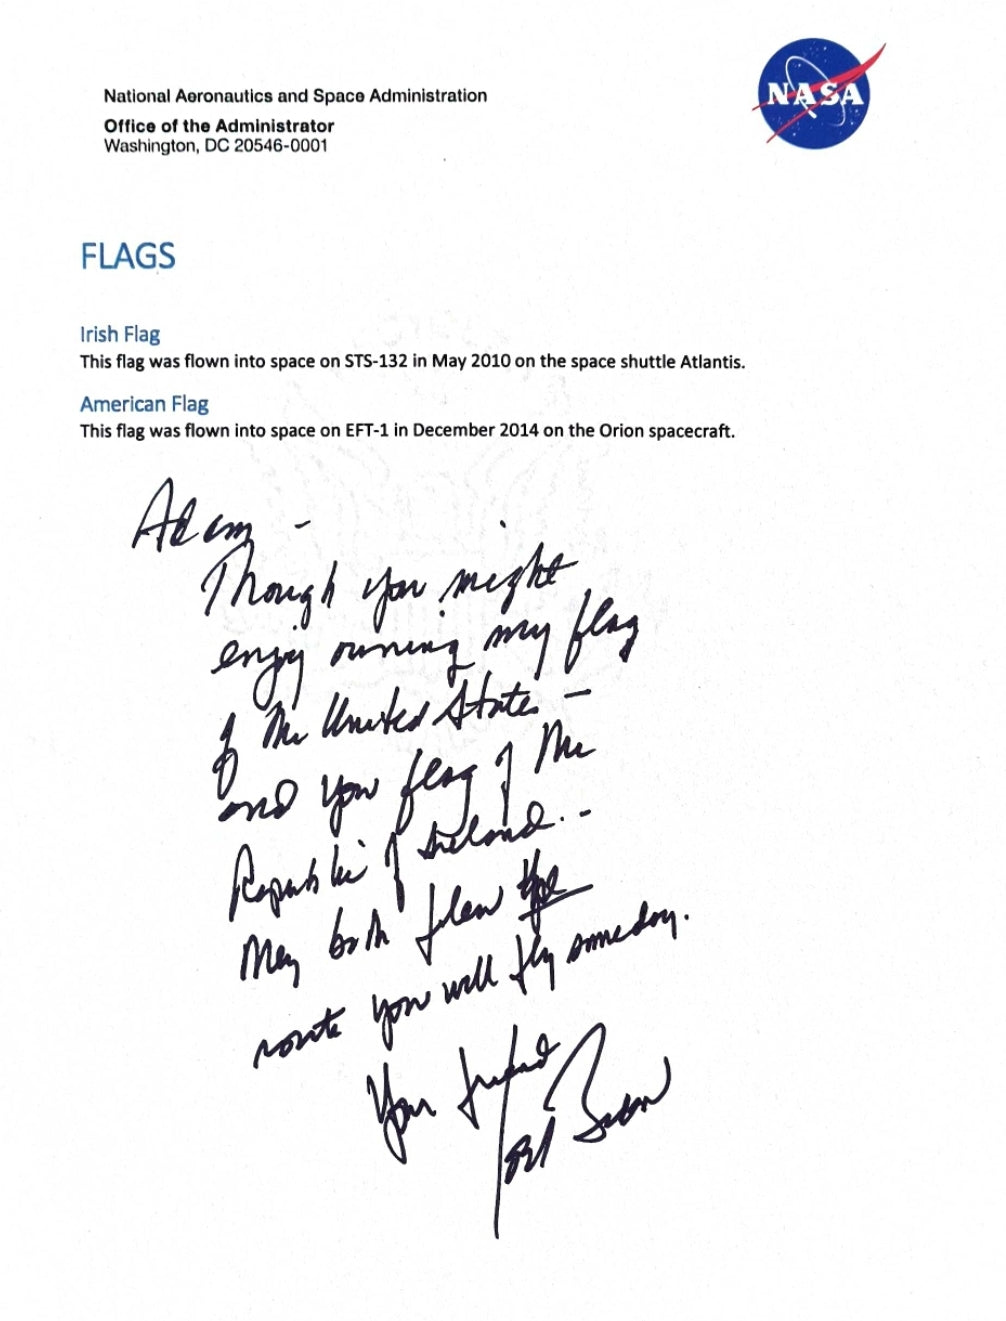 Letter from White House about flags in space